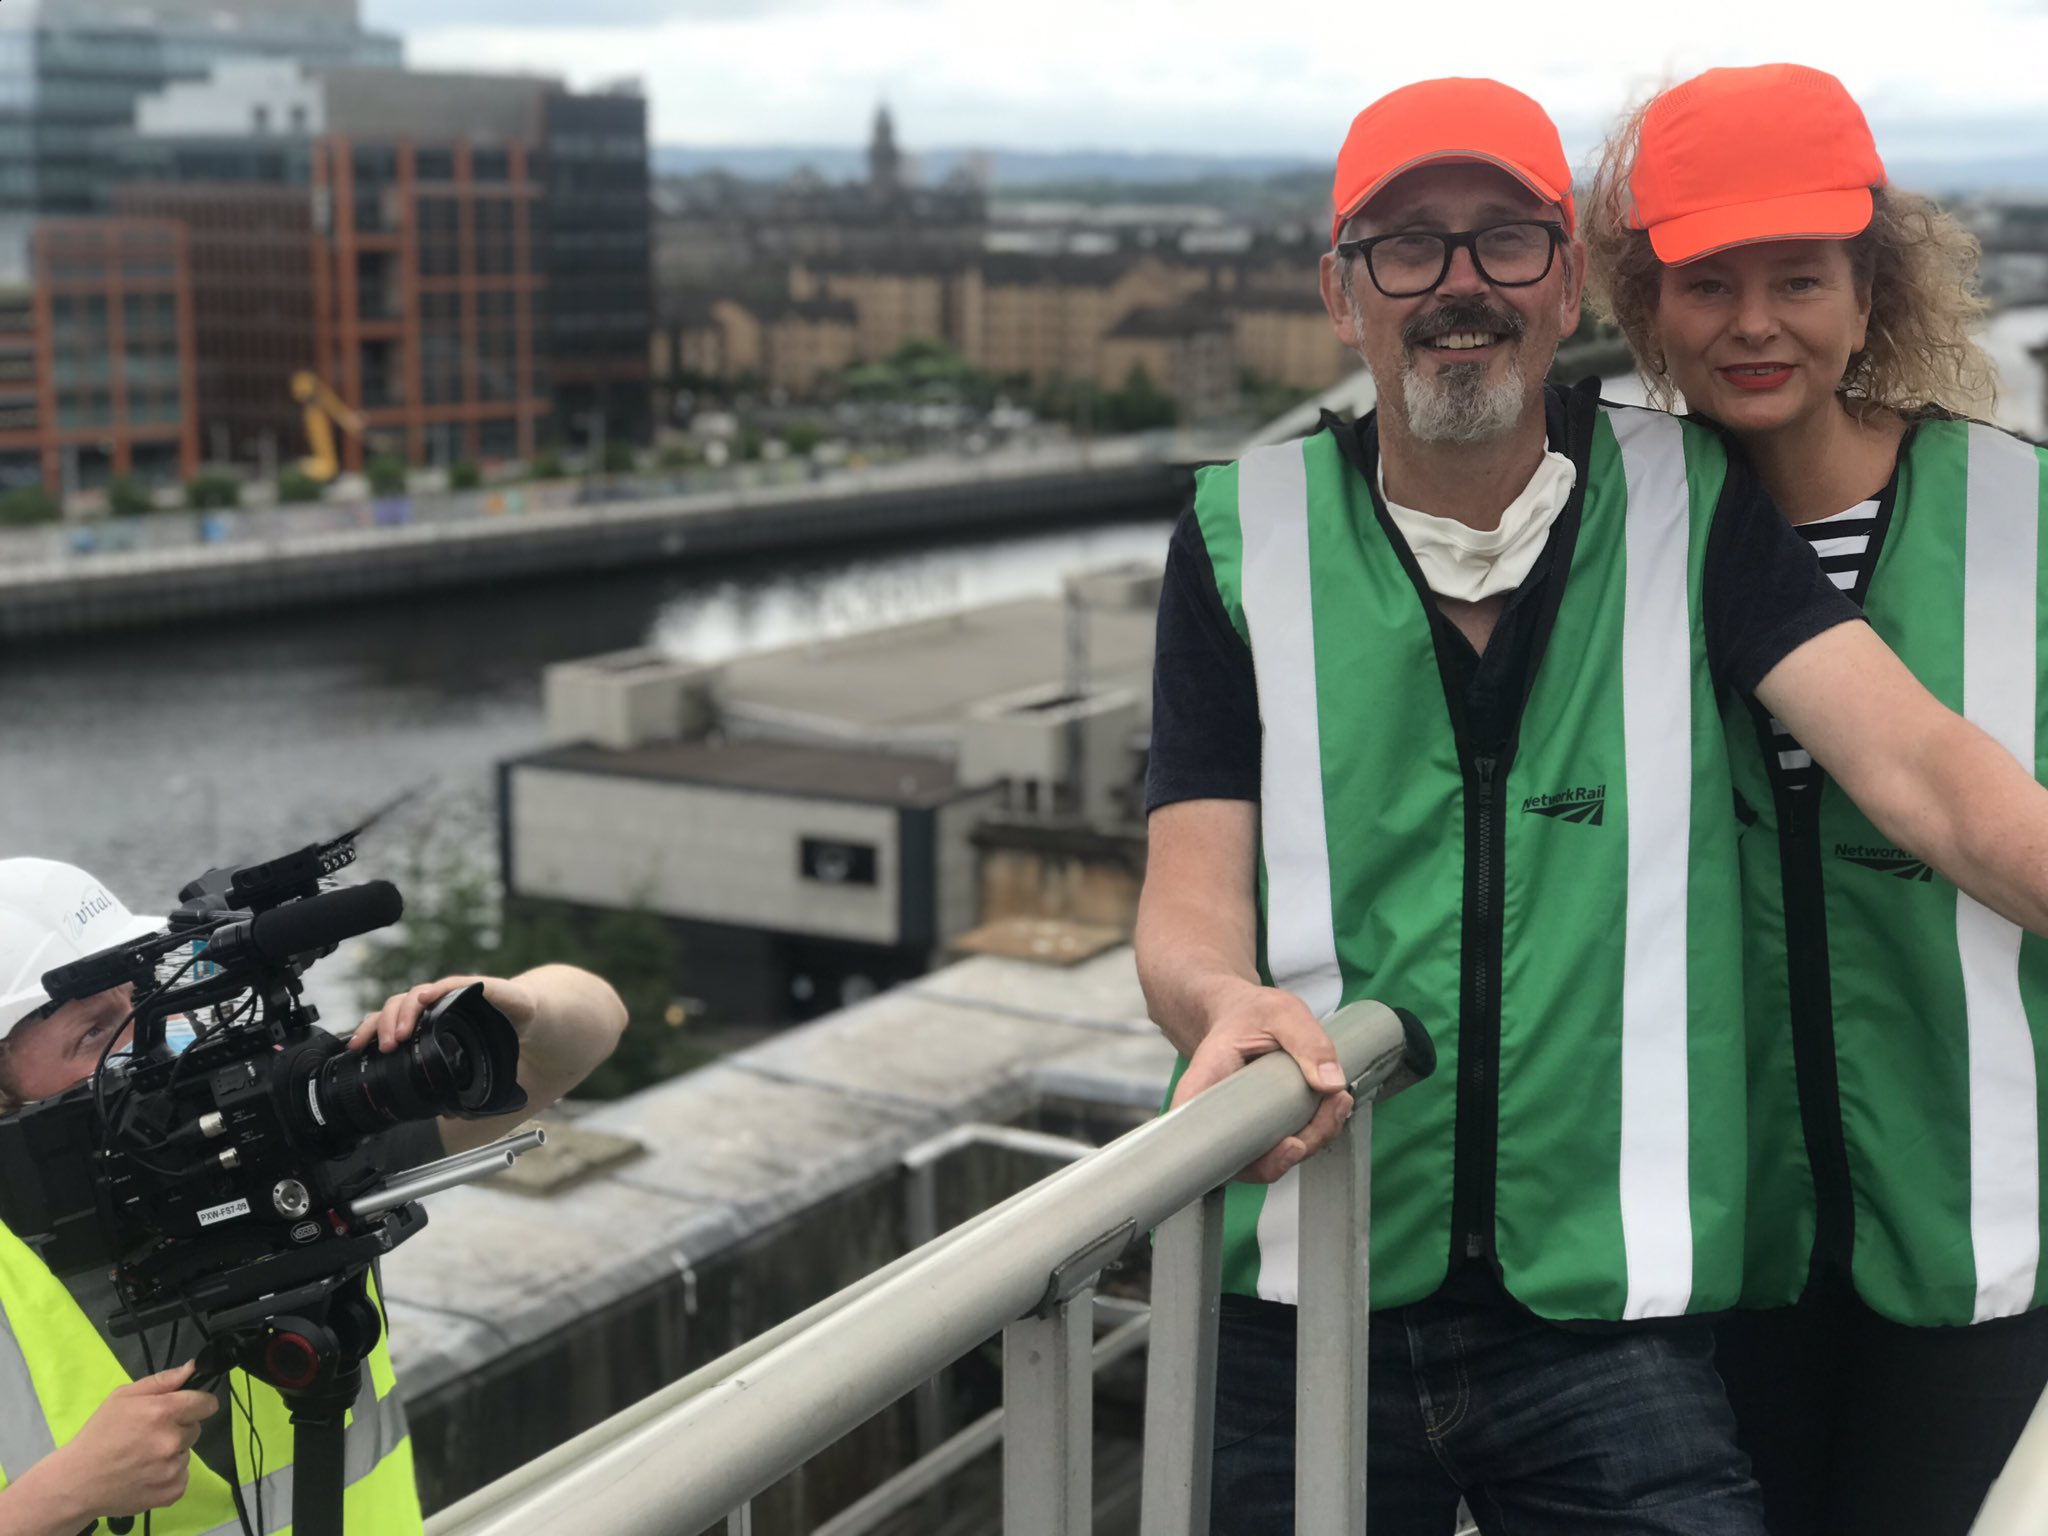 Filming gets underway for new series of Inside Central Station